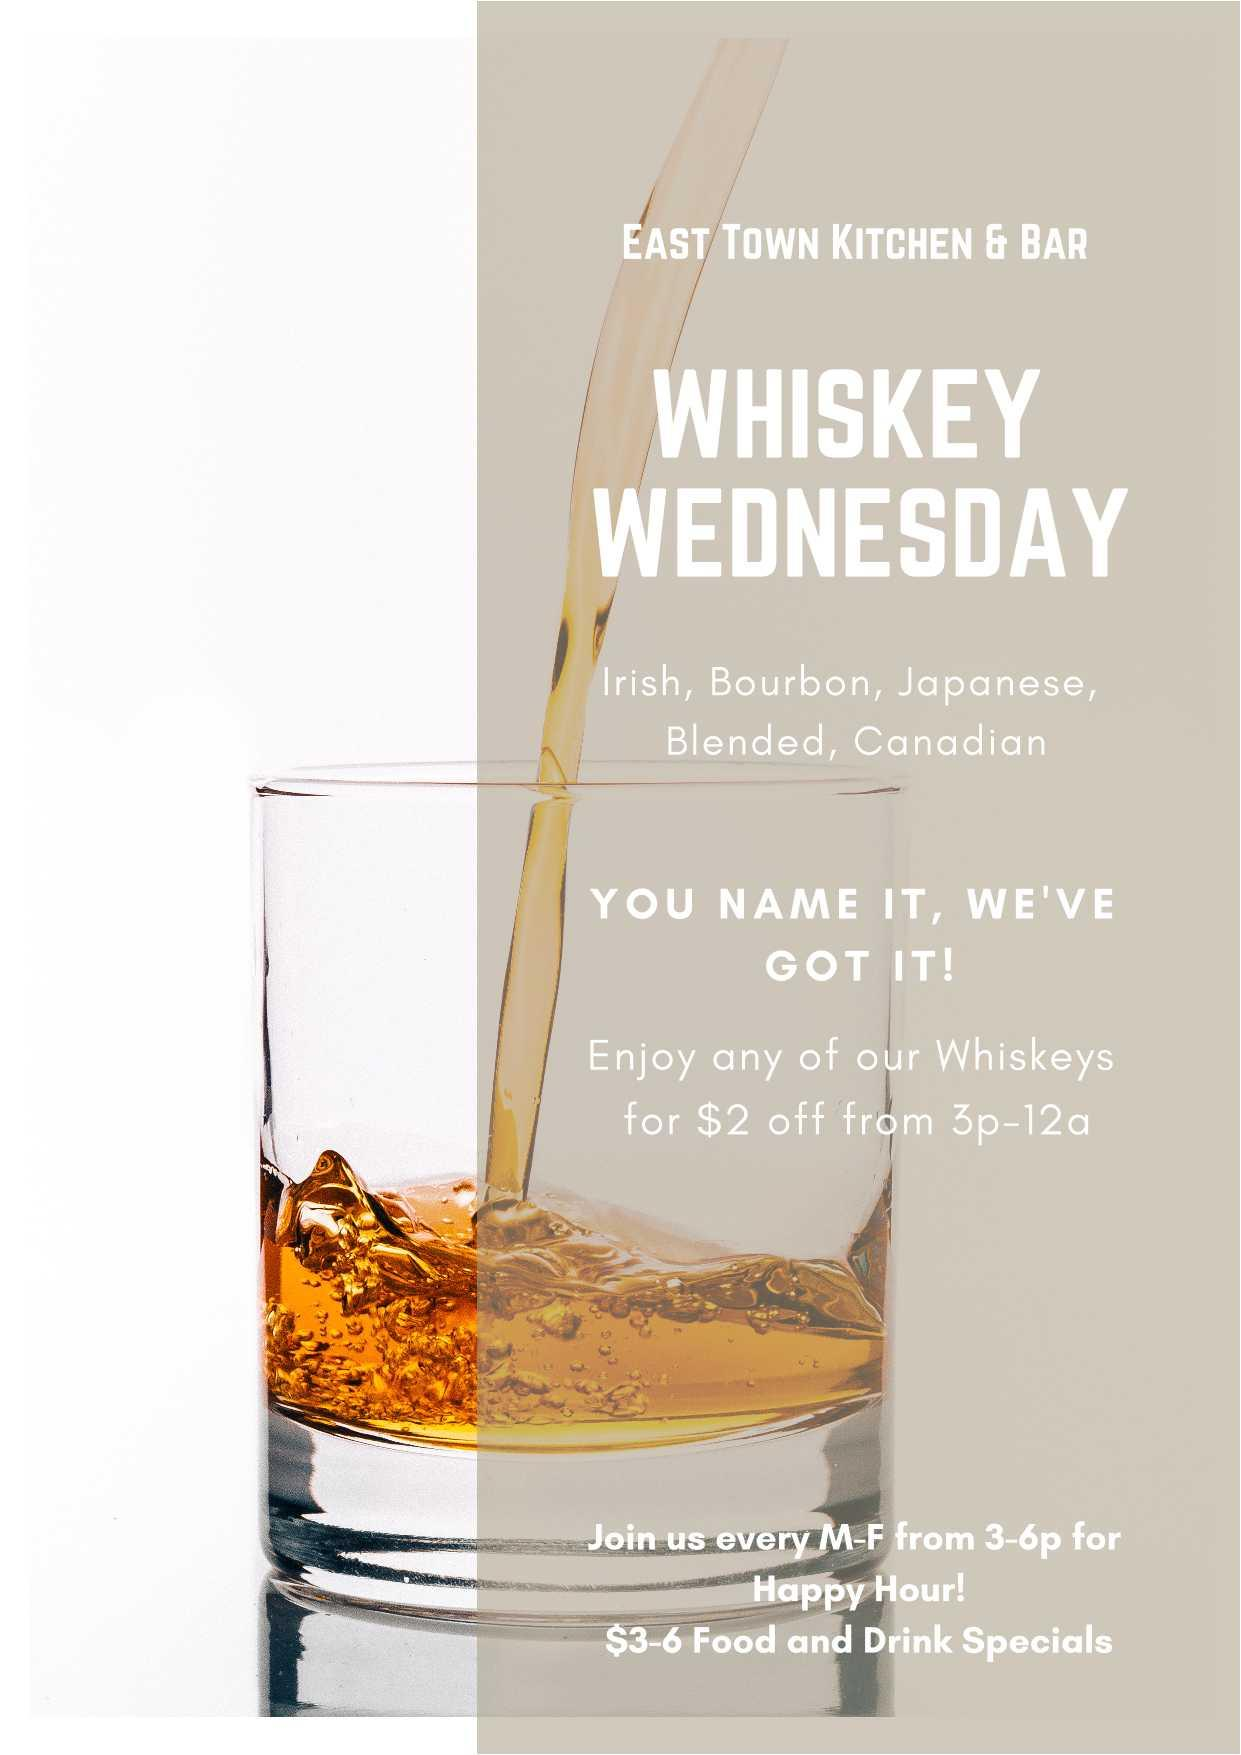 Whiskey Specials on Wednesday at East Town Kitchen & Bar